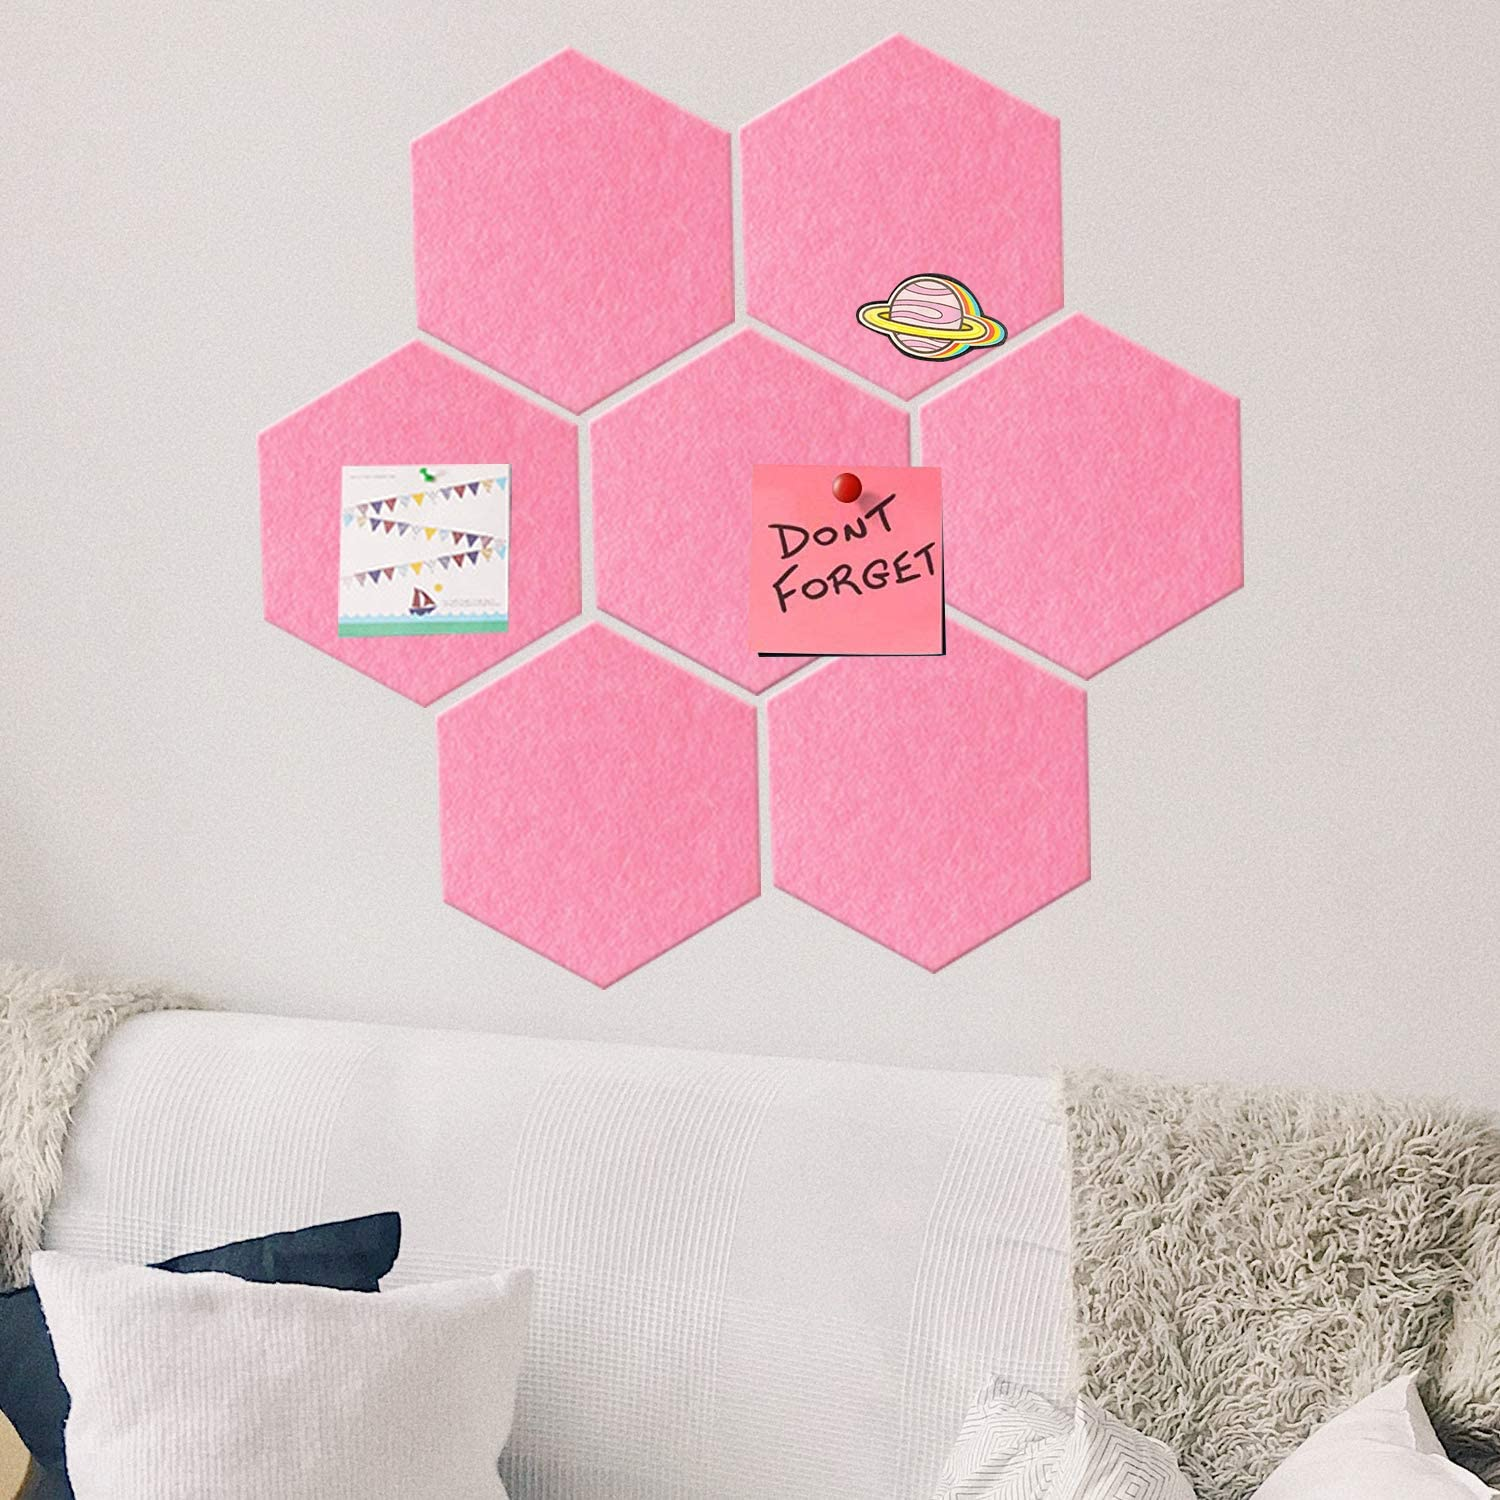 Fanciher 7 Pack Hexagon Felt Board, Cork Board, Memo Board, Adhesive Wall Bulletin Board, Message Board, for Office Bedroom Home Wall Decor with Push Pins with 20 pcs pins (Pink)